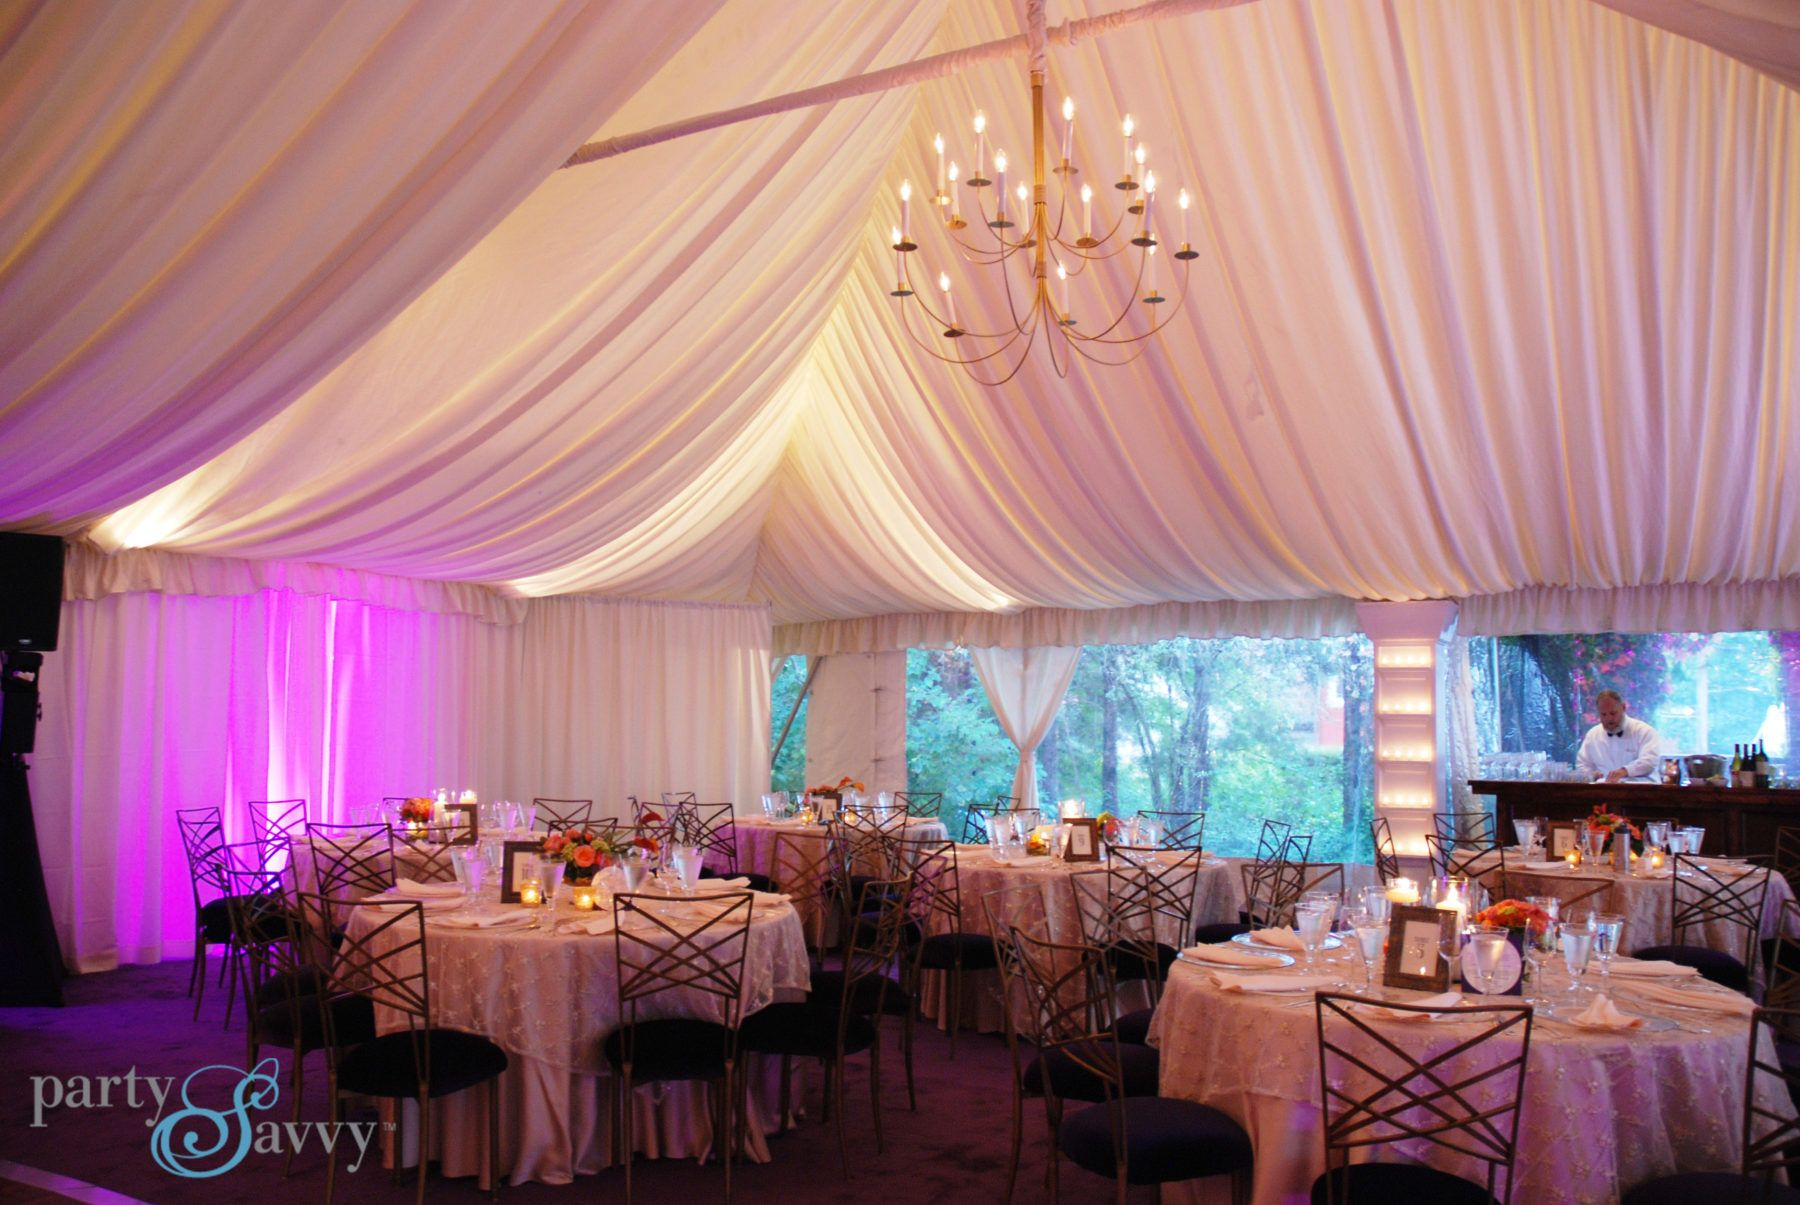 Tented Mattress Factory Wedding | Pittsburgh PA Outdoor Winter Wedding Outdoor Events Pittsburgh Pa & Tented Mattress Factory Wedding | Pittsburgh PA | Wedding and Event ...